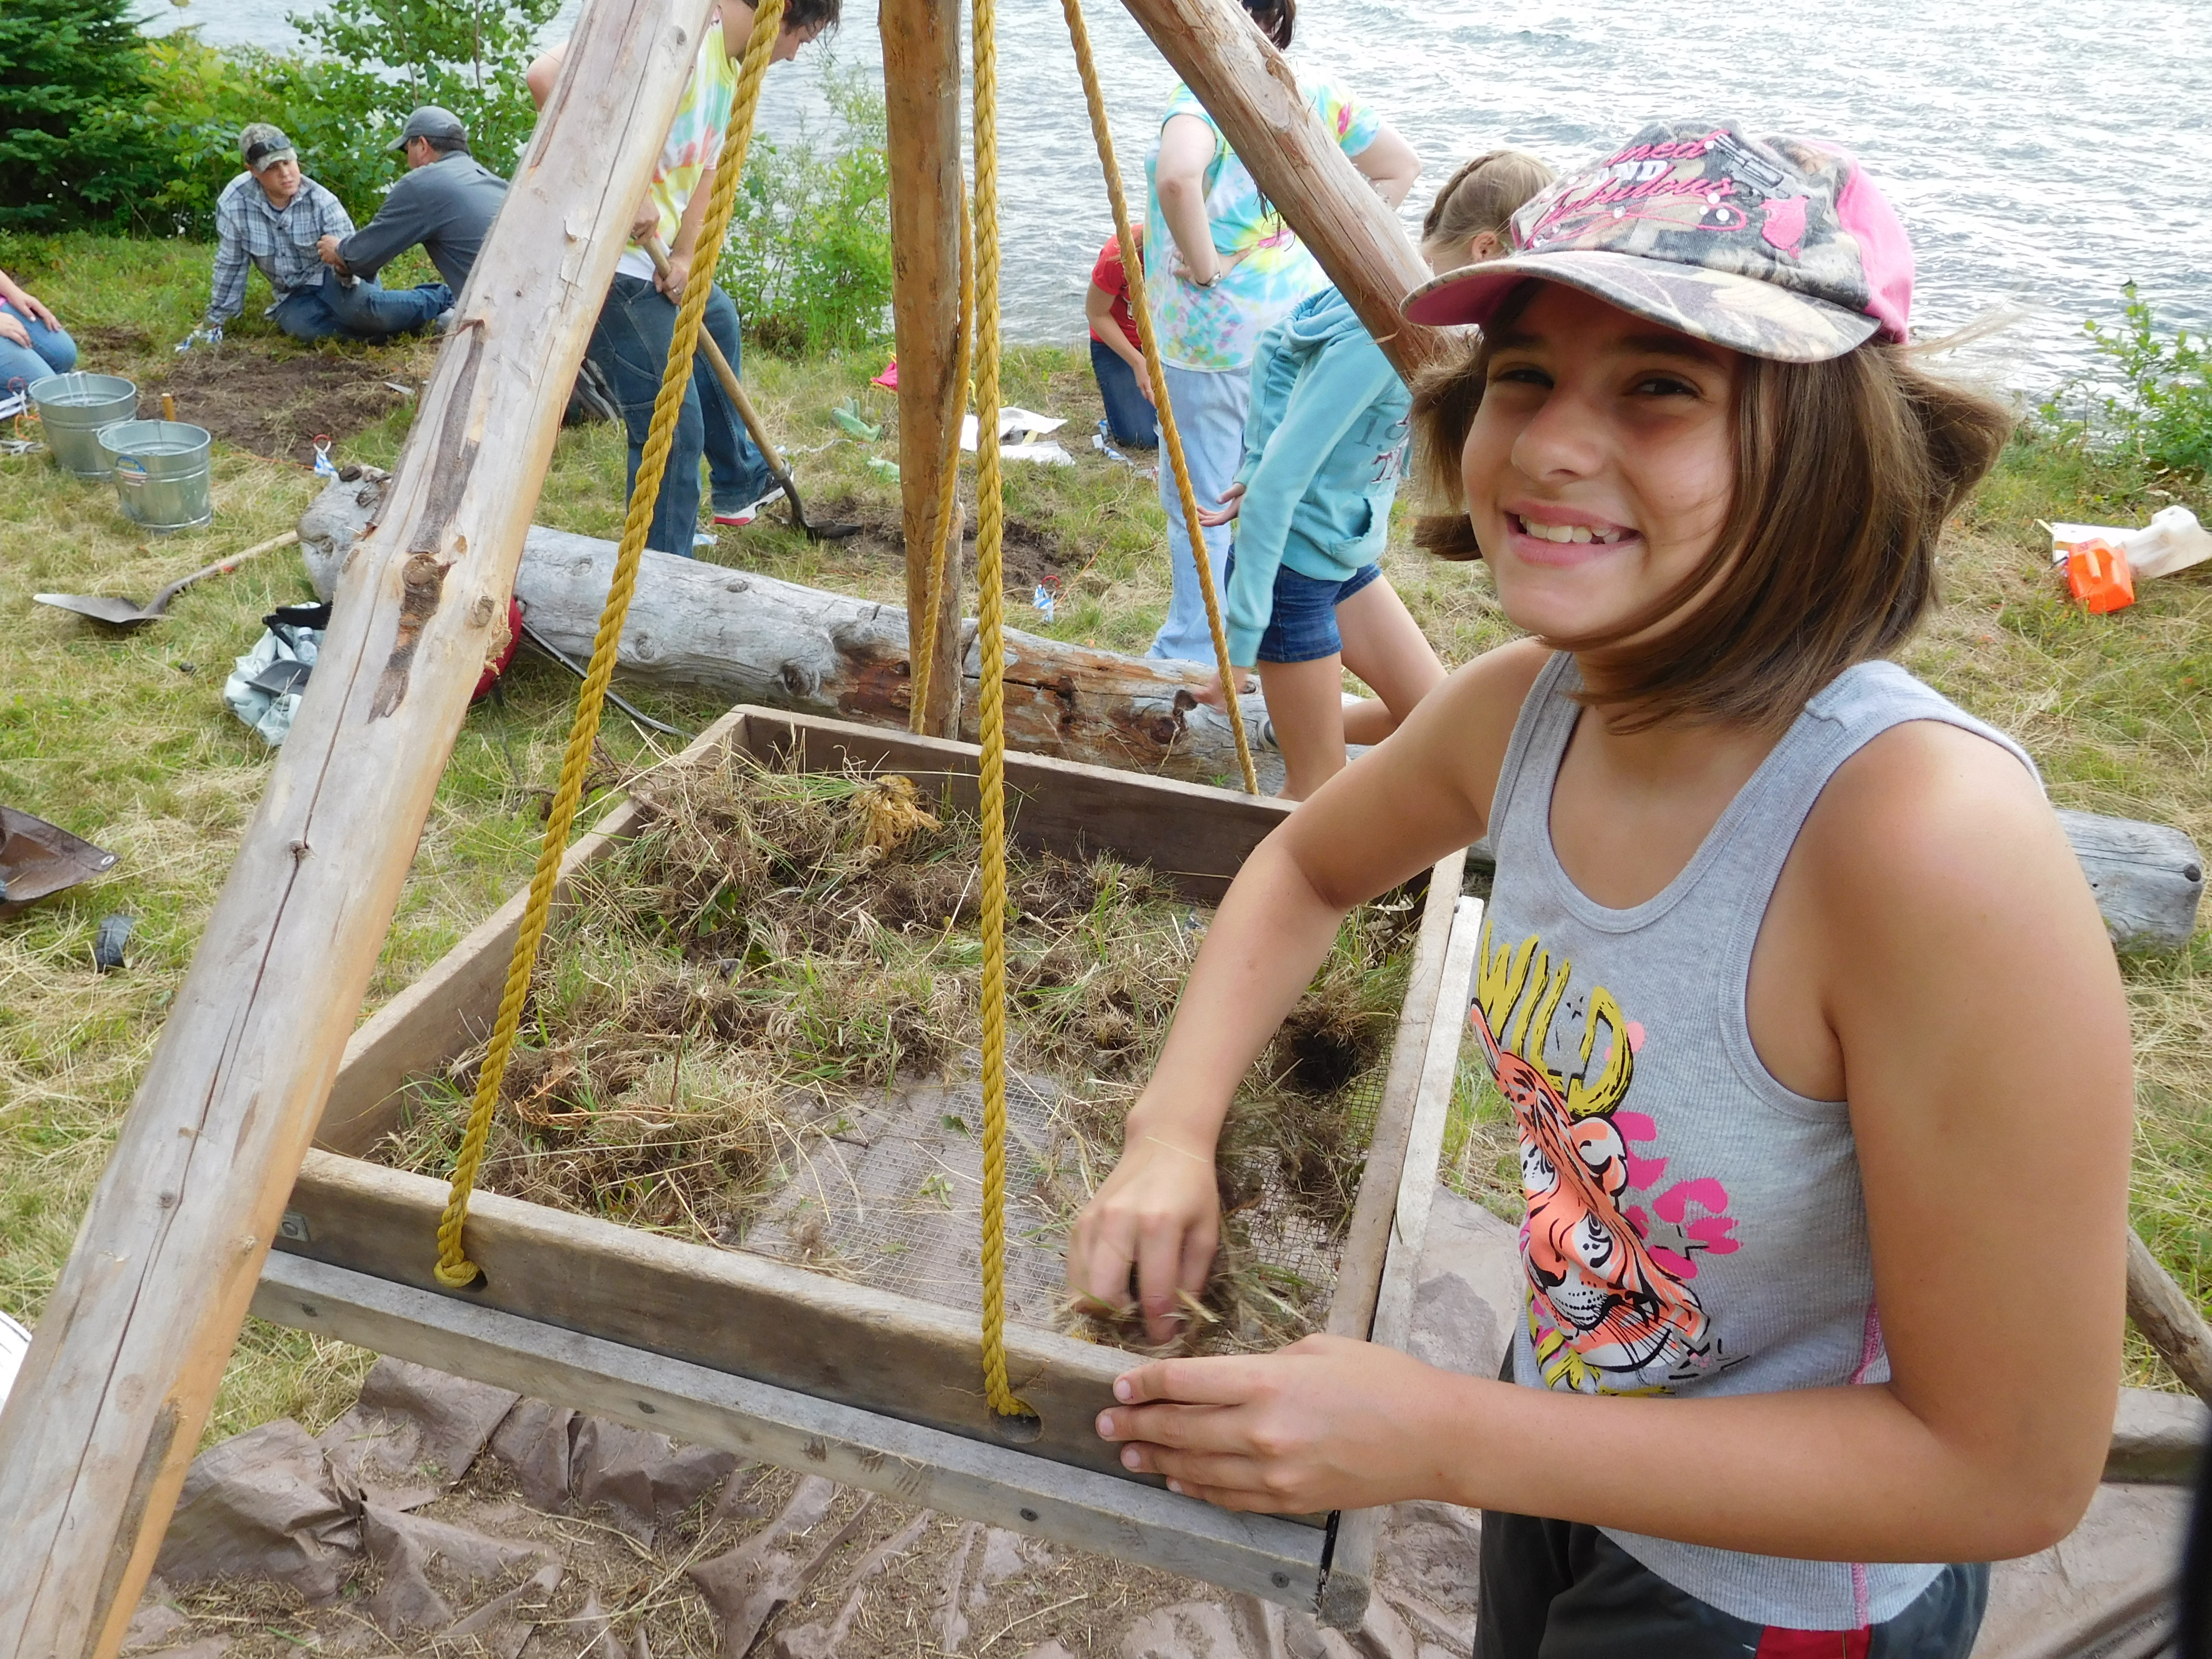 Preservation 50 - Grand Island youth Archeology Workshop